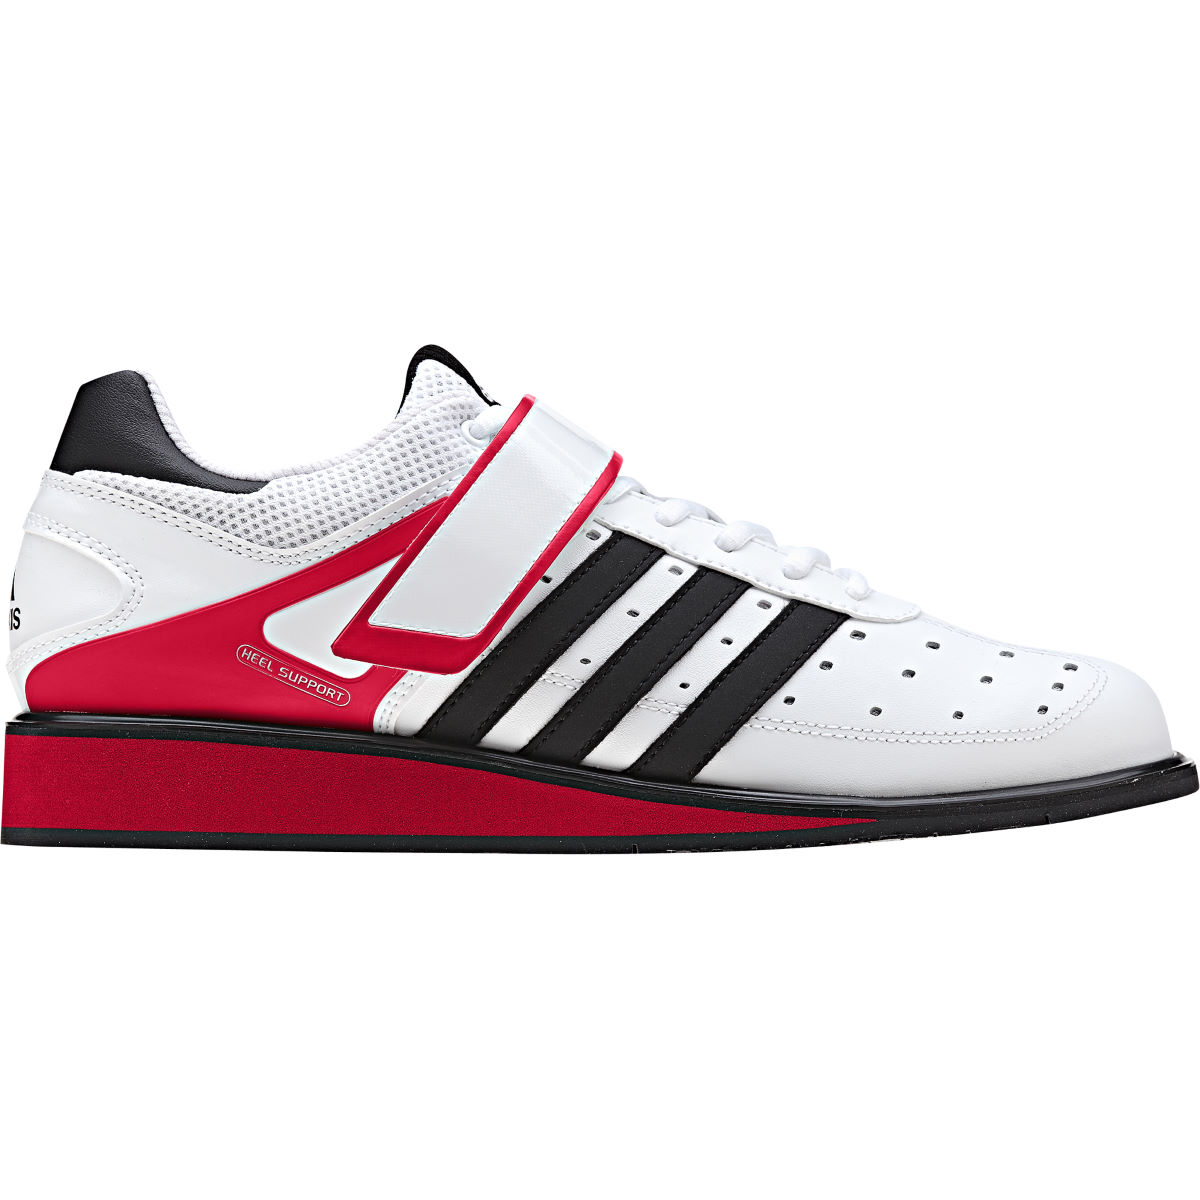 Chaussures d'haltérophilie Adidas Power Perfect II - 13,5 UK